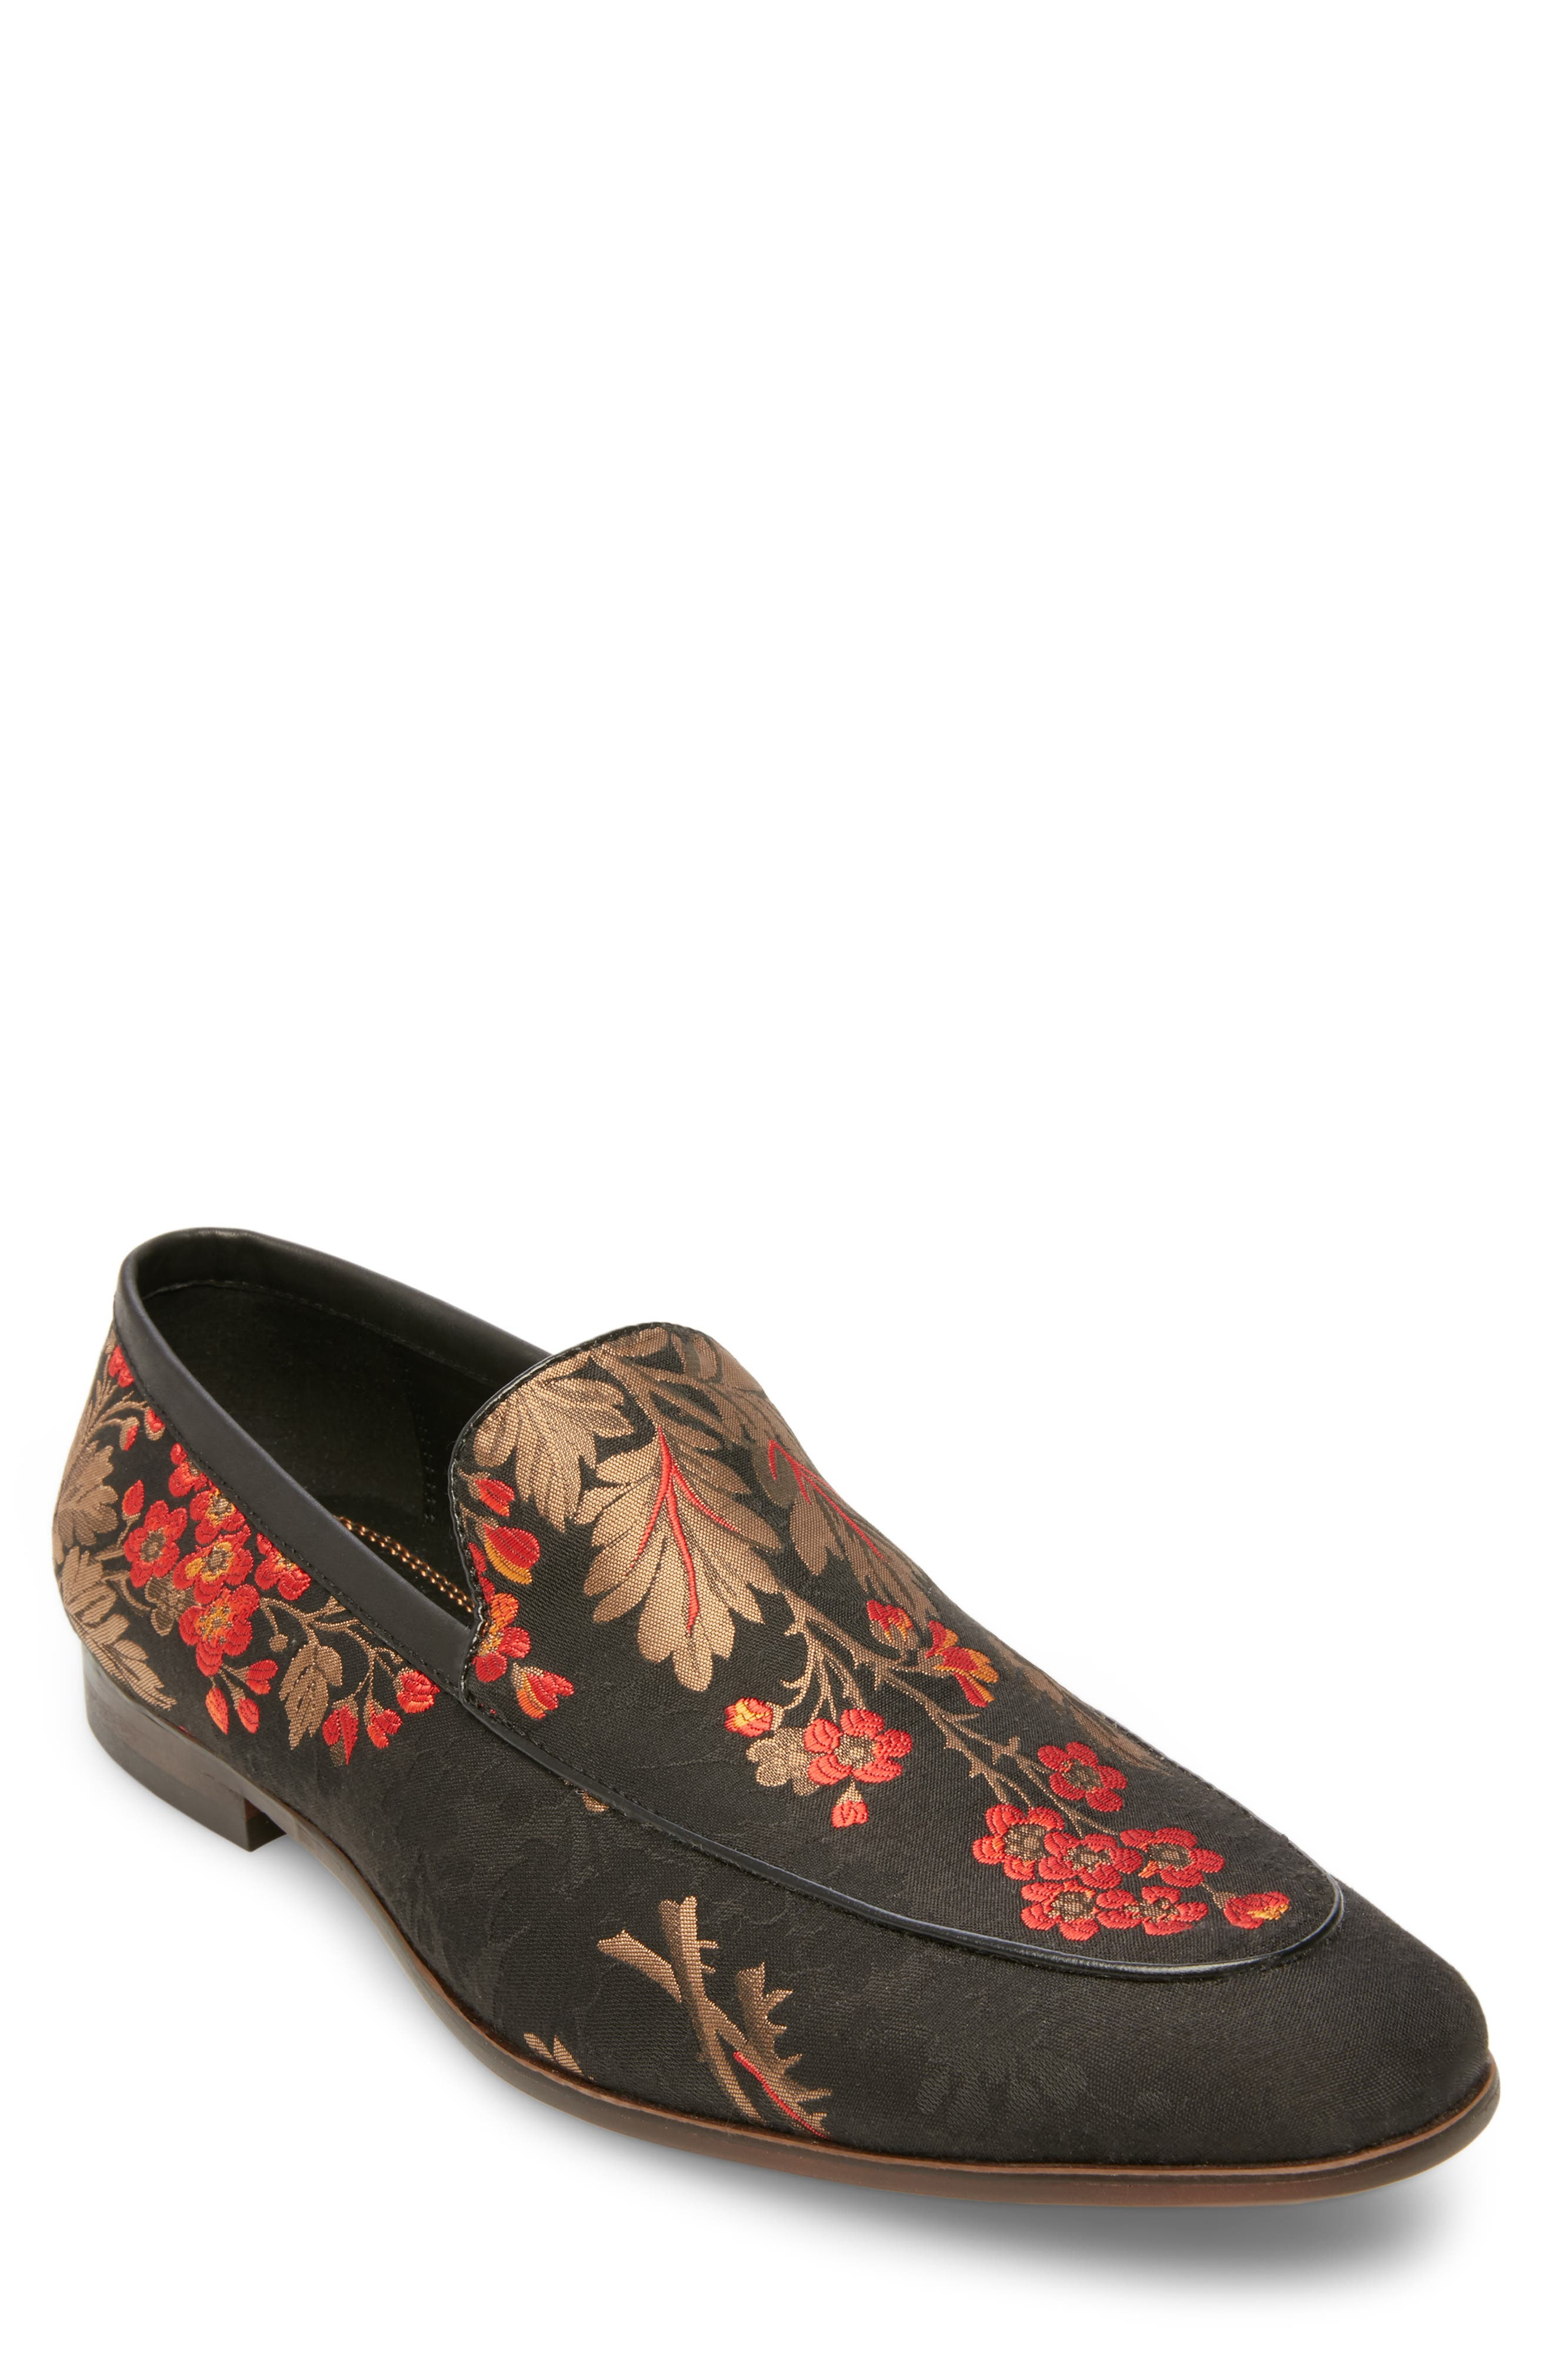 Duplex Apron Toe Venetian Loafer,                         Main,                         color, BLACK/ RED